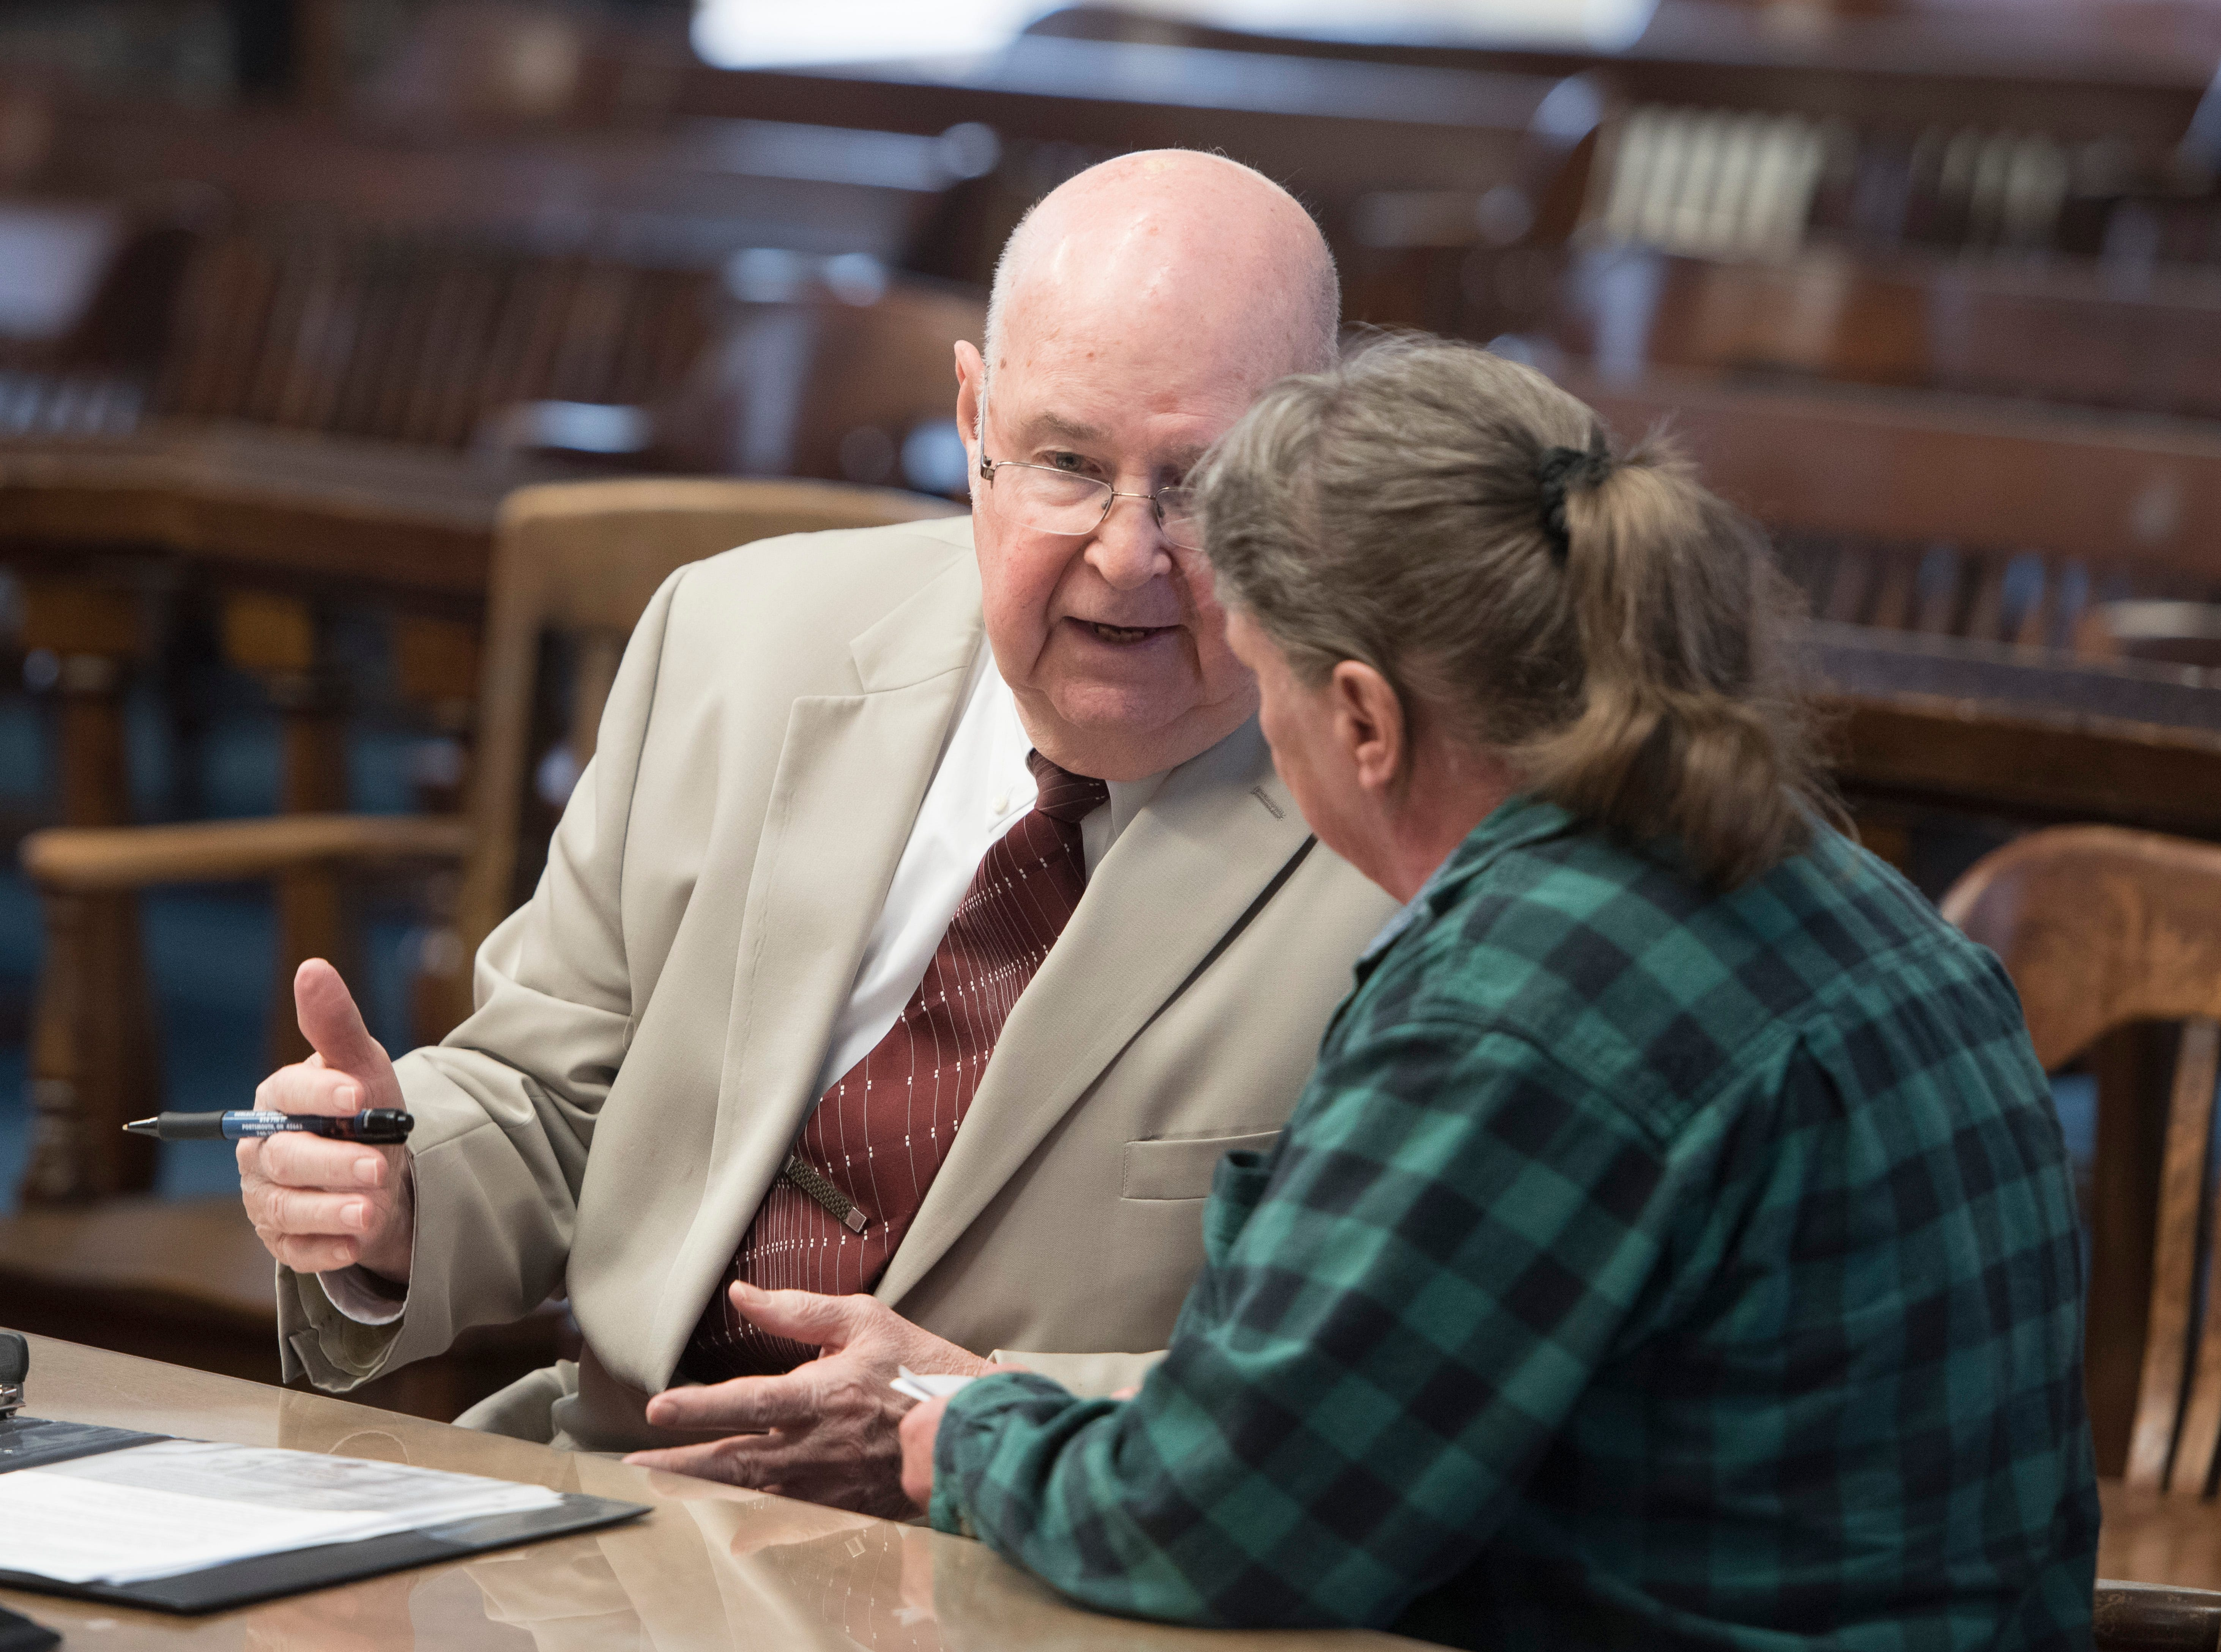 Rita Newcomb confers with her lawyer Franklin T. Gerlach shortly before Judge Randy Deering enters the courtroom at the Pike County Courthouse on March 28, 2019. Newcomb, 65, of South Webster, is accused of perjury and obstructing justice for allegedly misleading investigators concerning the deaths of the eight members of the Rhoden family in 2016 and is also charged with forging custody documents to cover up the crimes.